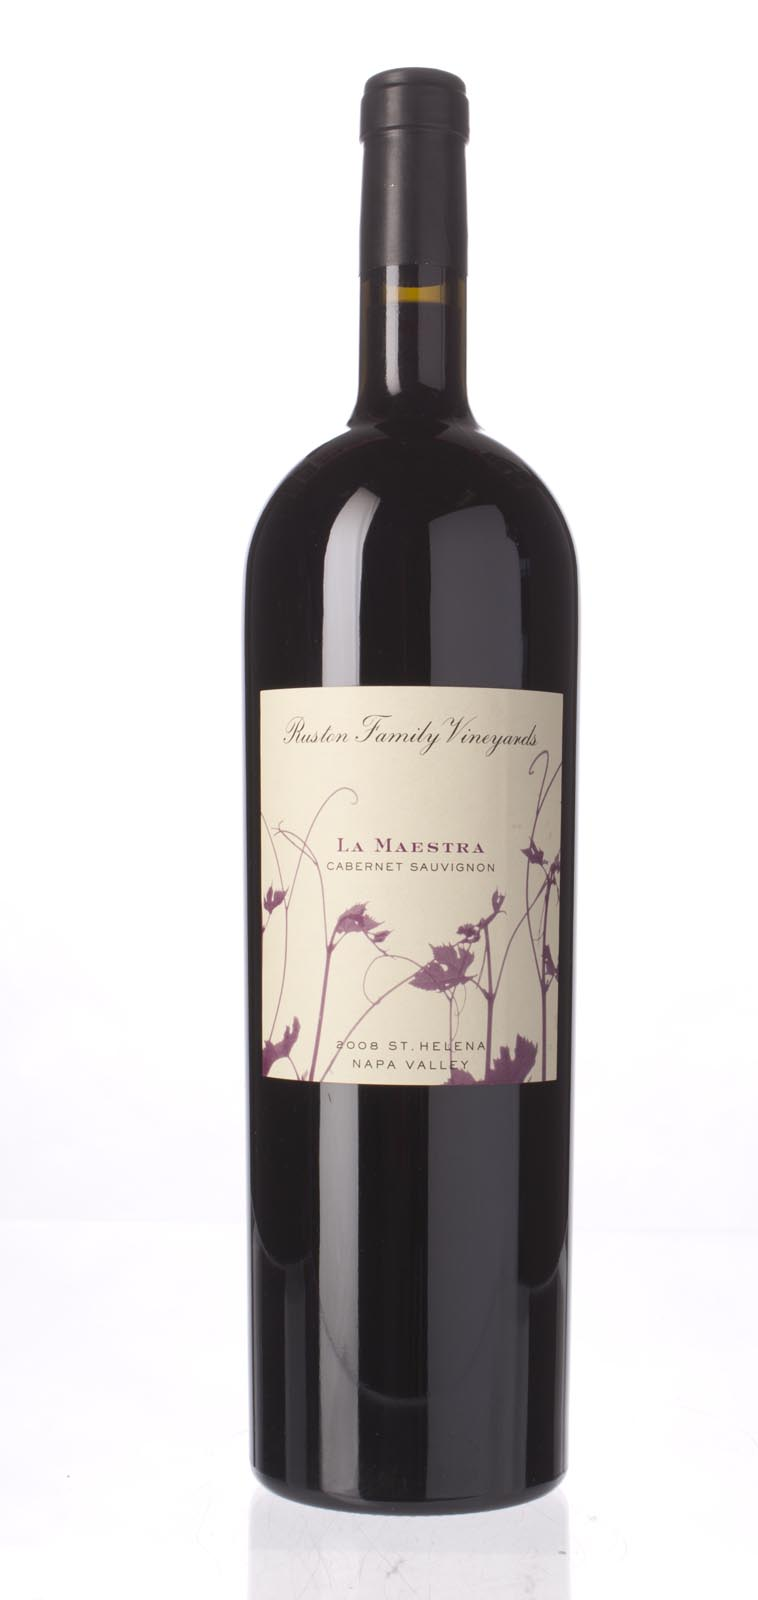 Ruston Family Vineyards La Maestra 2008, 1.5L () from The BPW - Merchants of rare and fine wines.